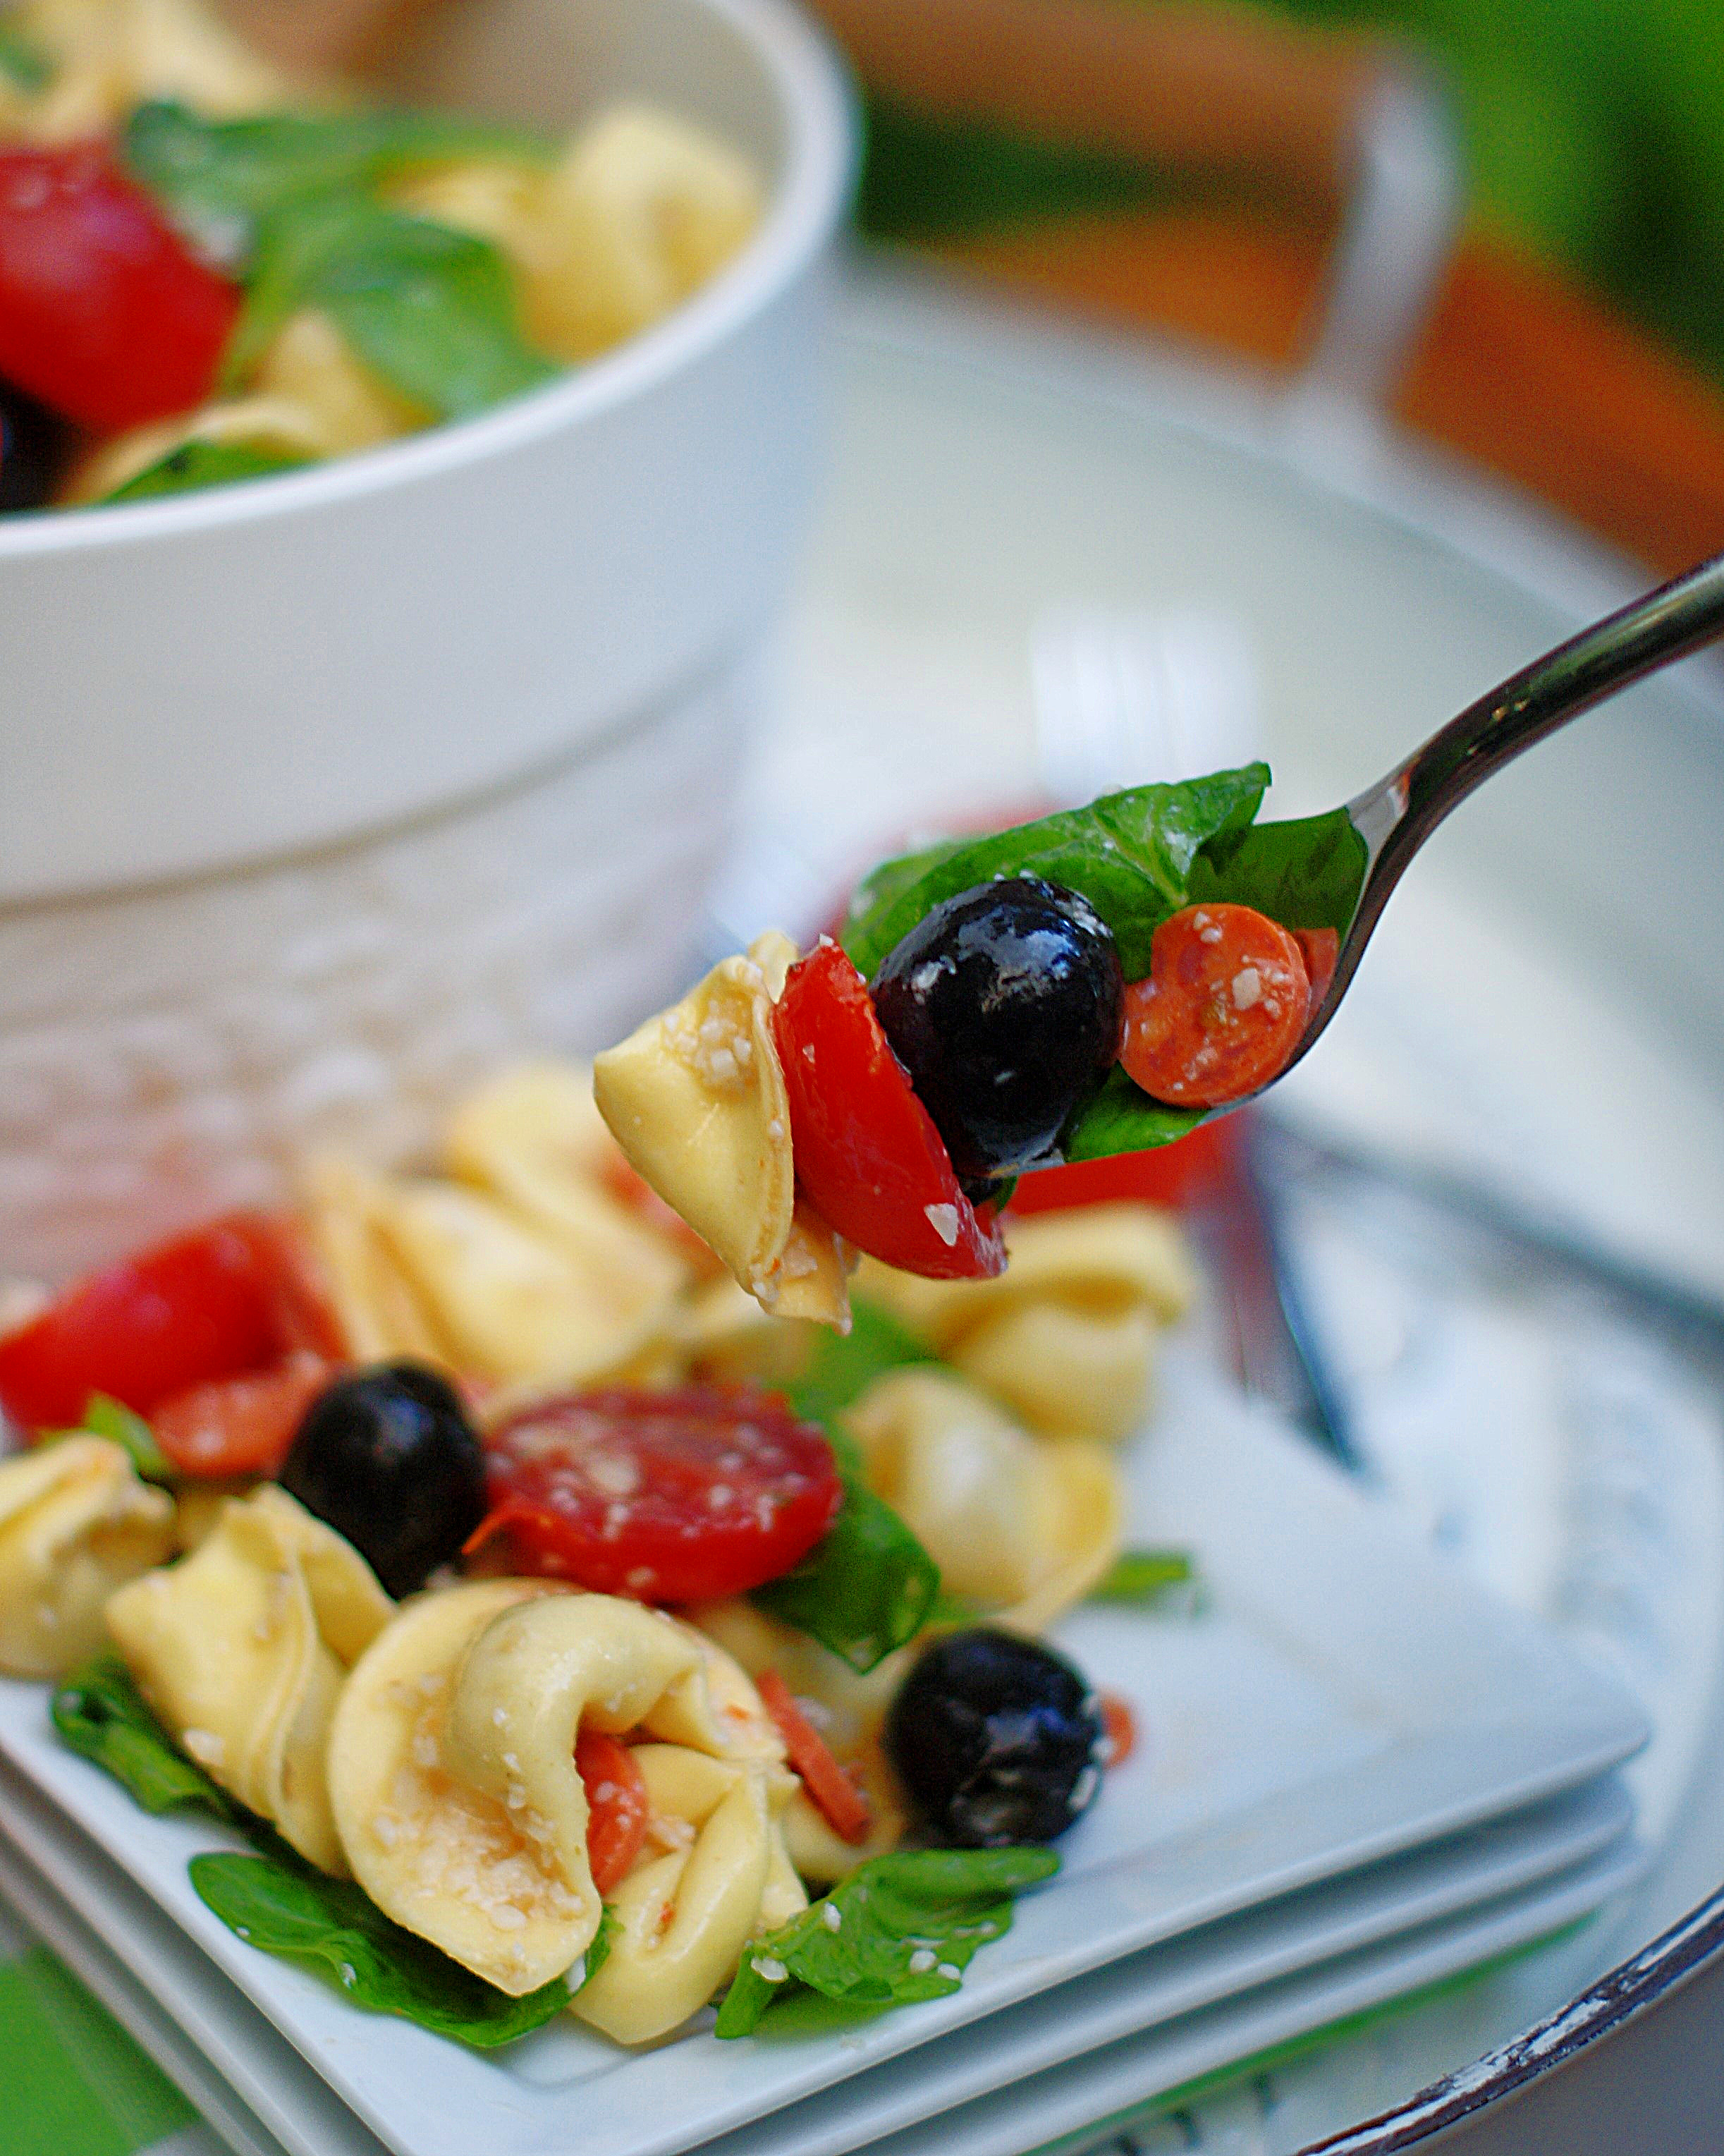 A forkful of tortellini pasta salad with a tomato. 2 cheese tortellini, black olive, pepperoni and spinach leaf.